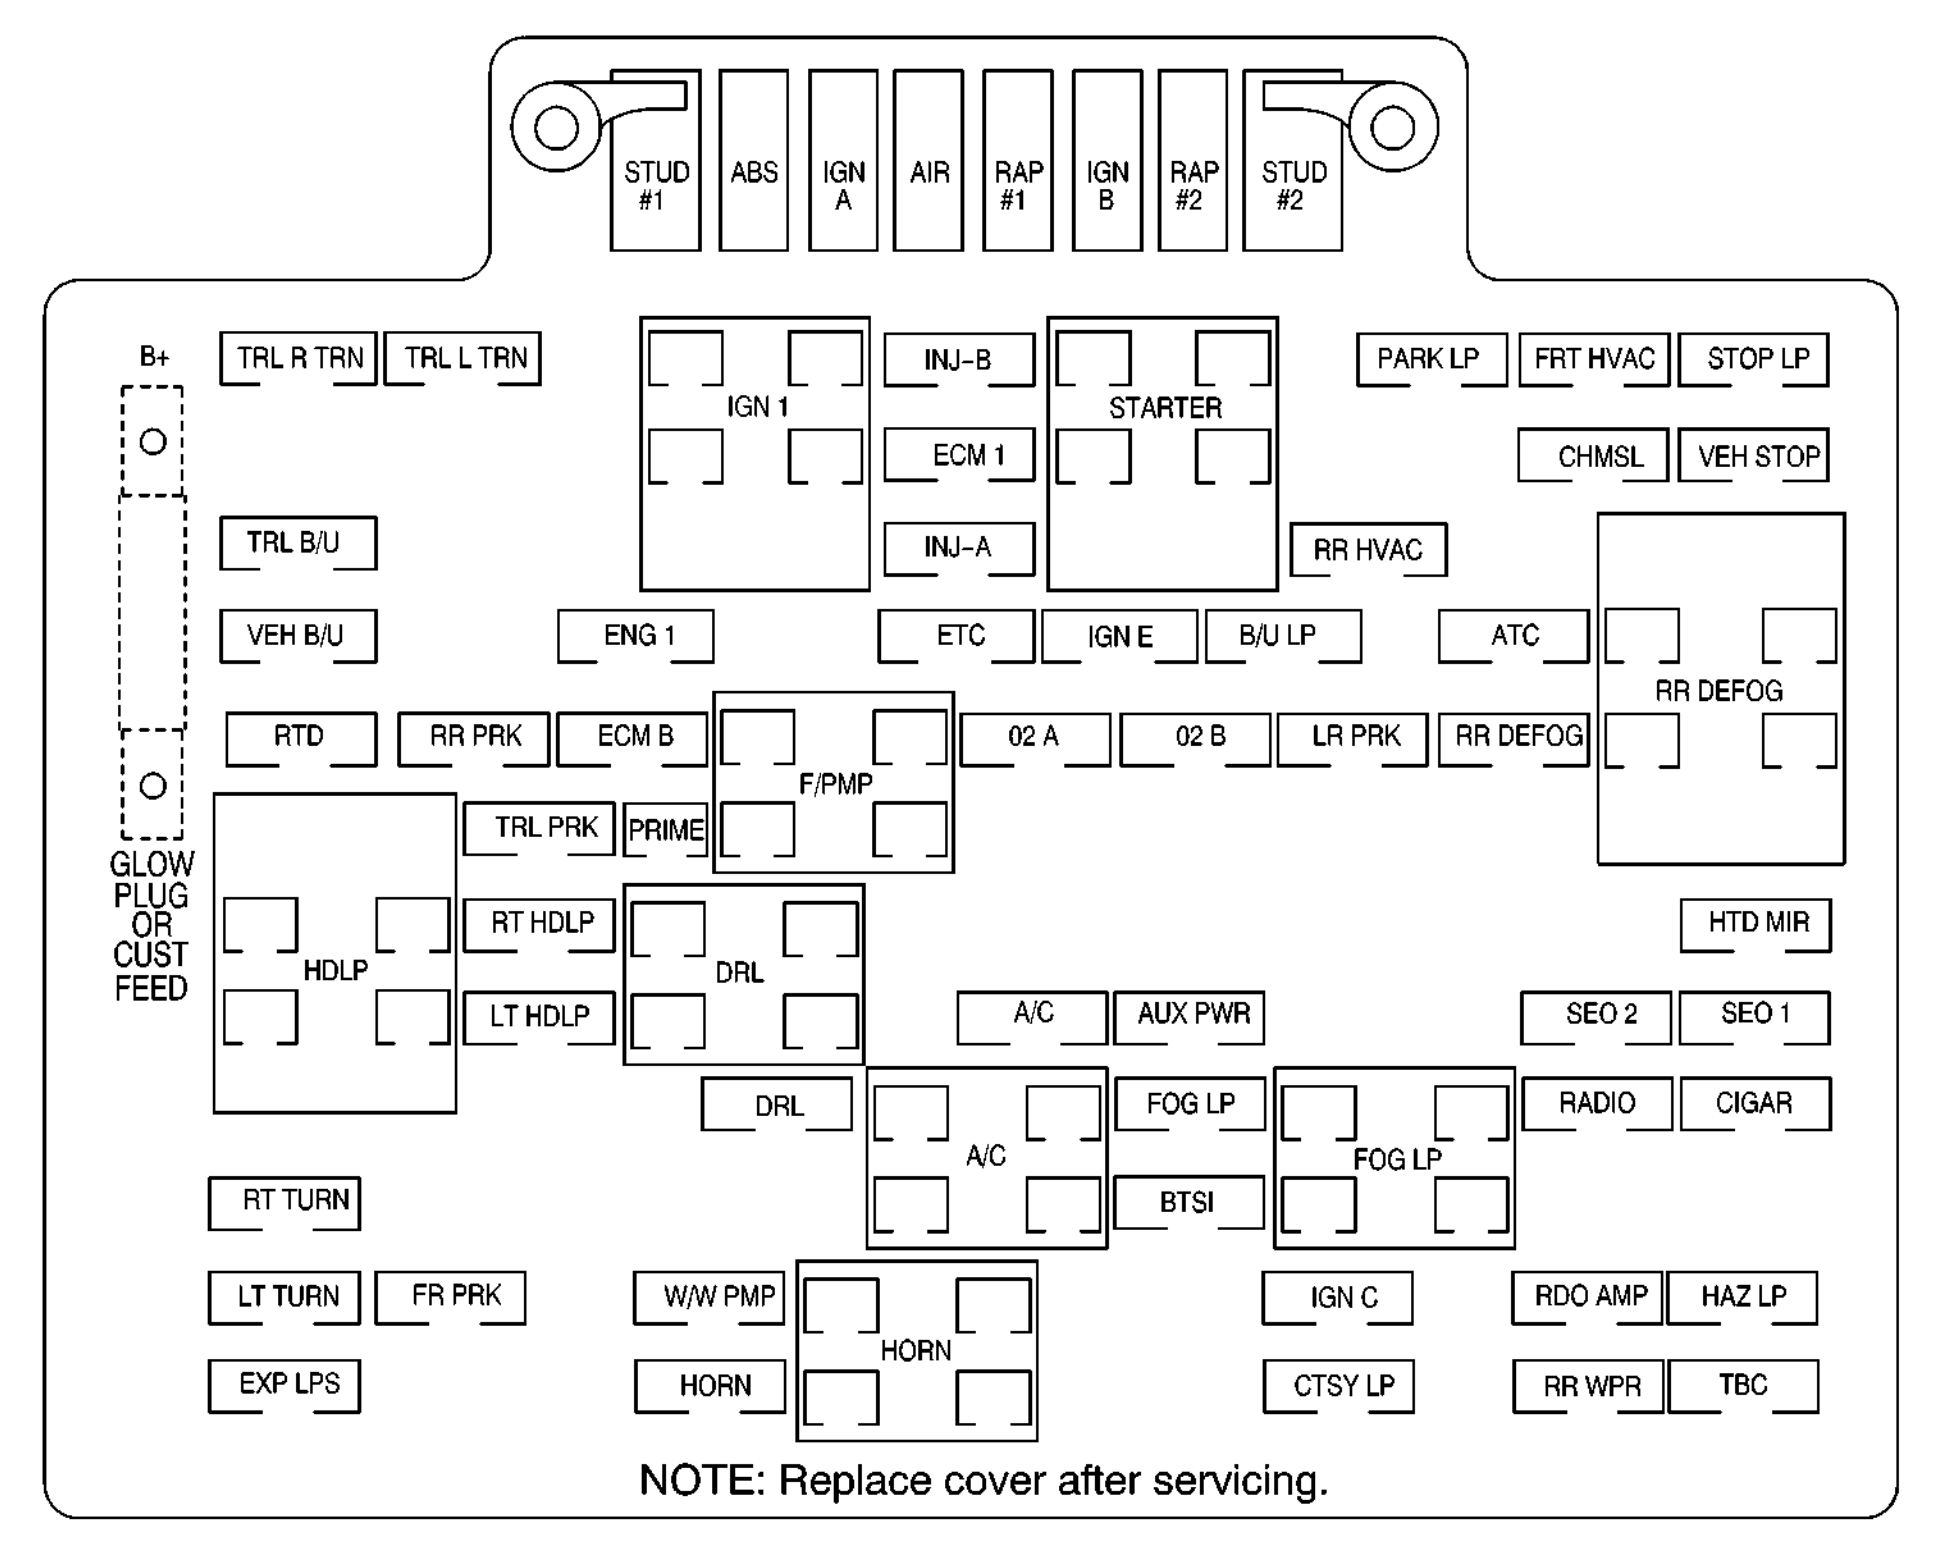 1984 Chevrolet Suburban Fuse Box Diagram Data Circuit Diagram \u2022 2000  Chevy Cavalier Fuse Box Diagram 2003 Chevy Silverado Fuse Box Diagram